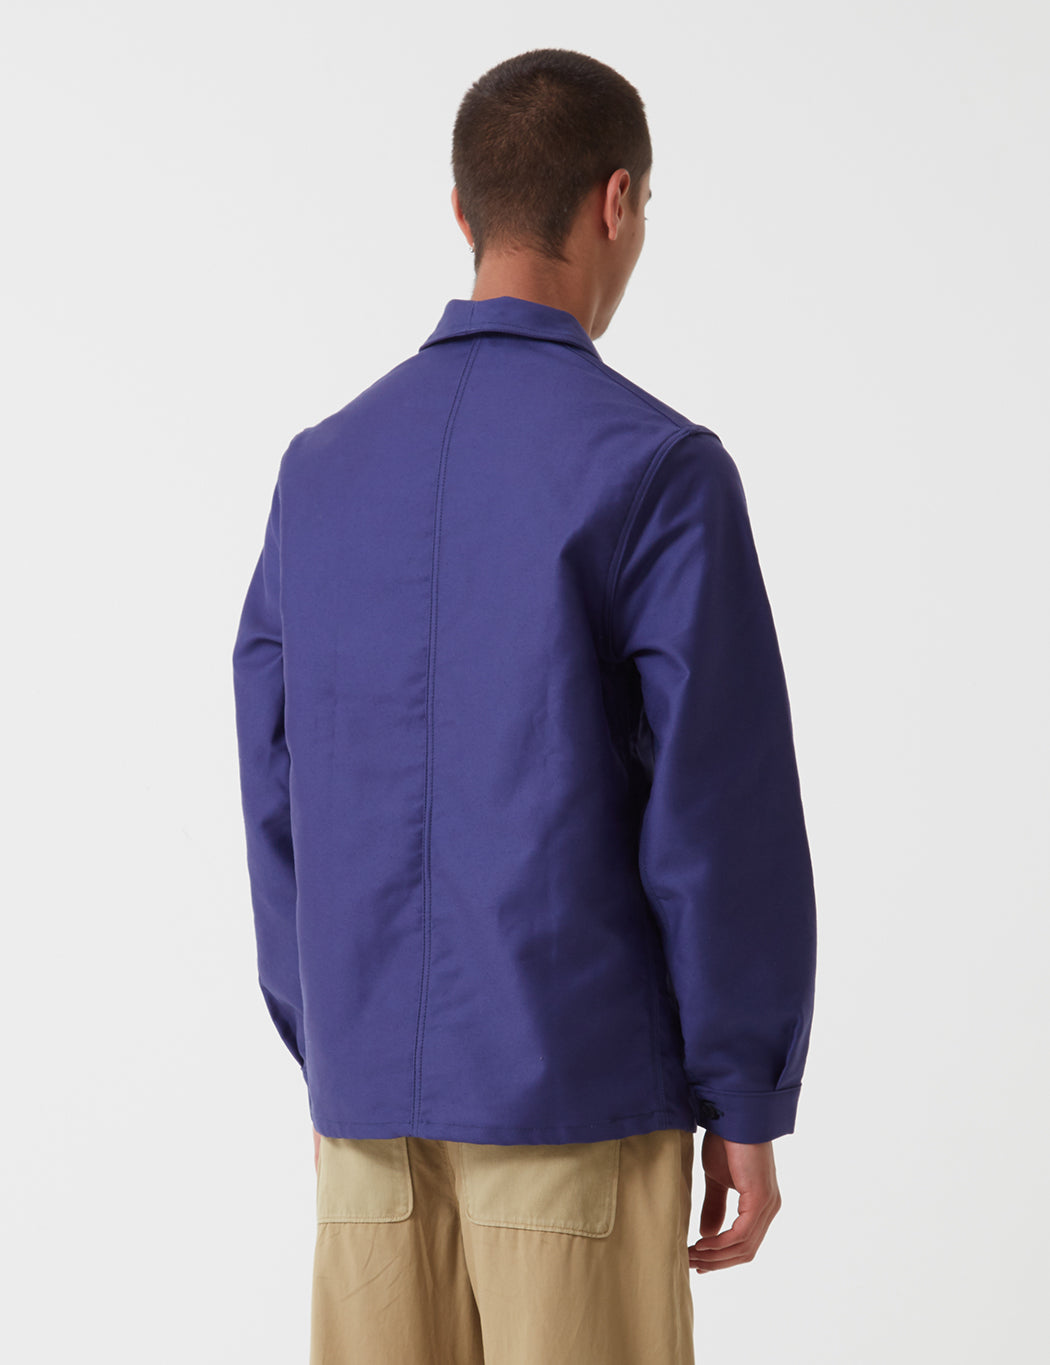 Le Laboureur Moleskin Work Jacket - Navy Blue